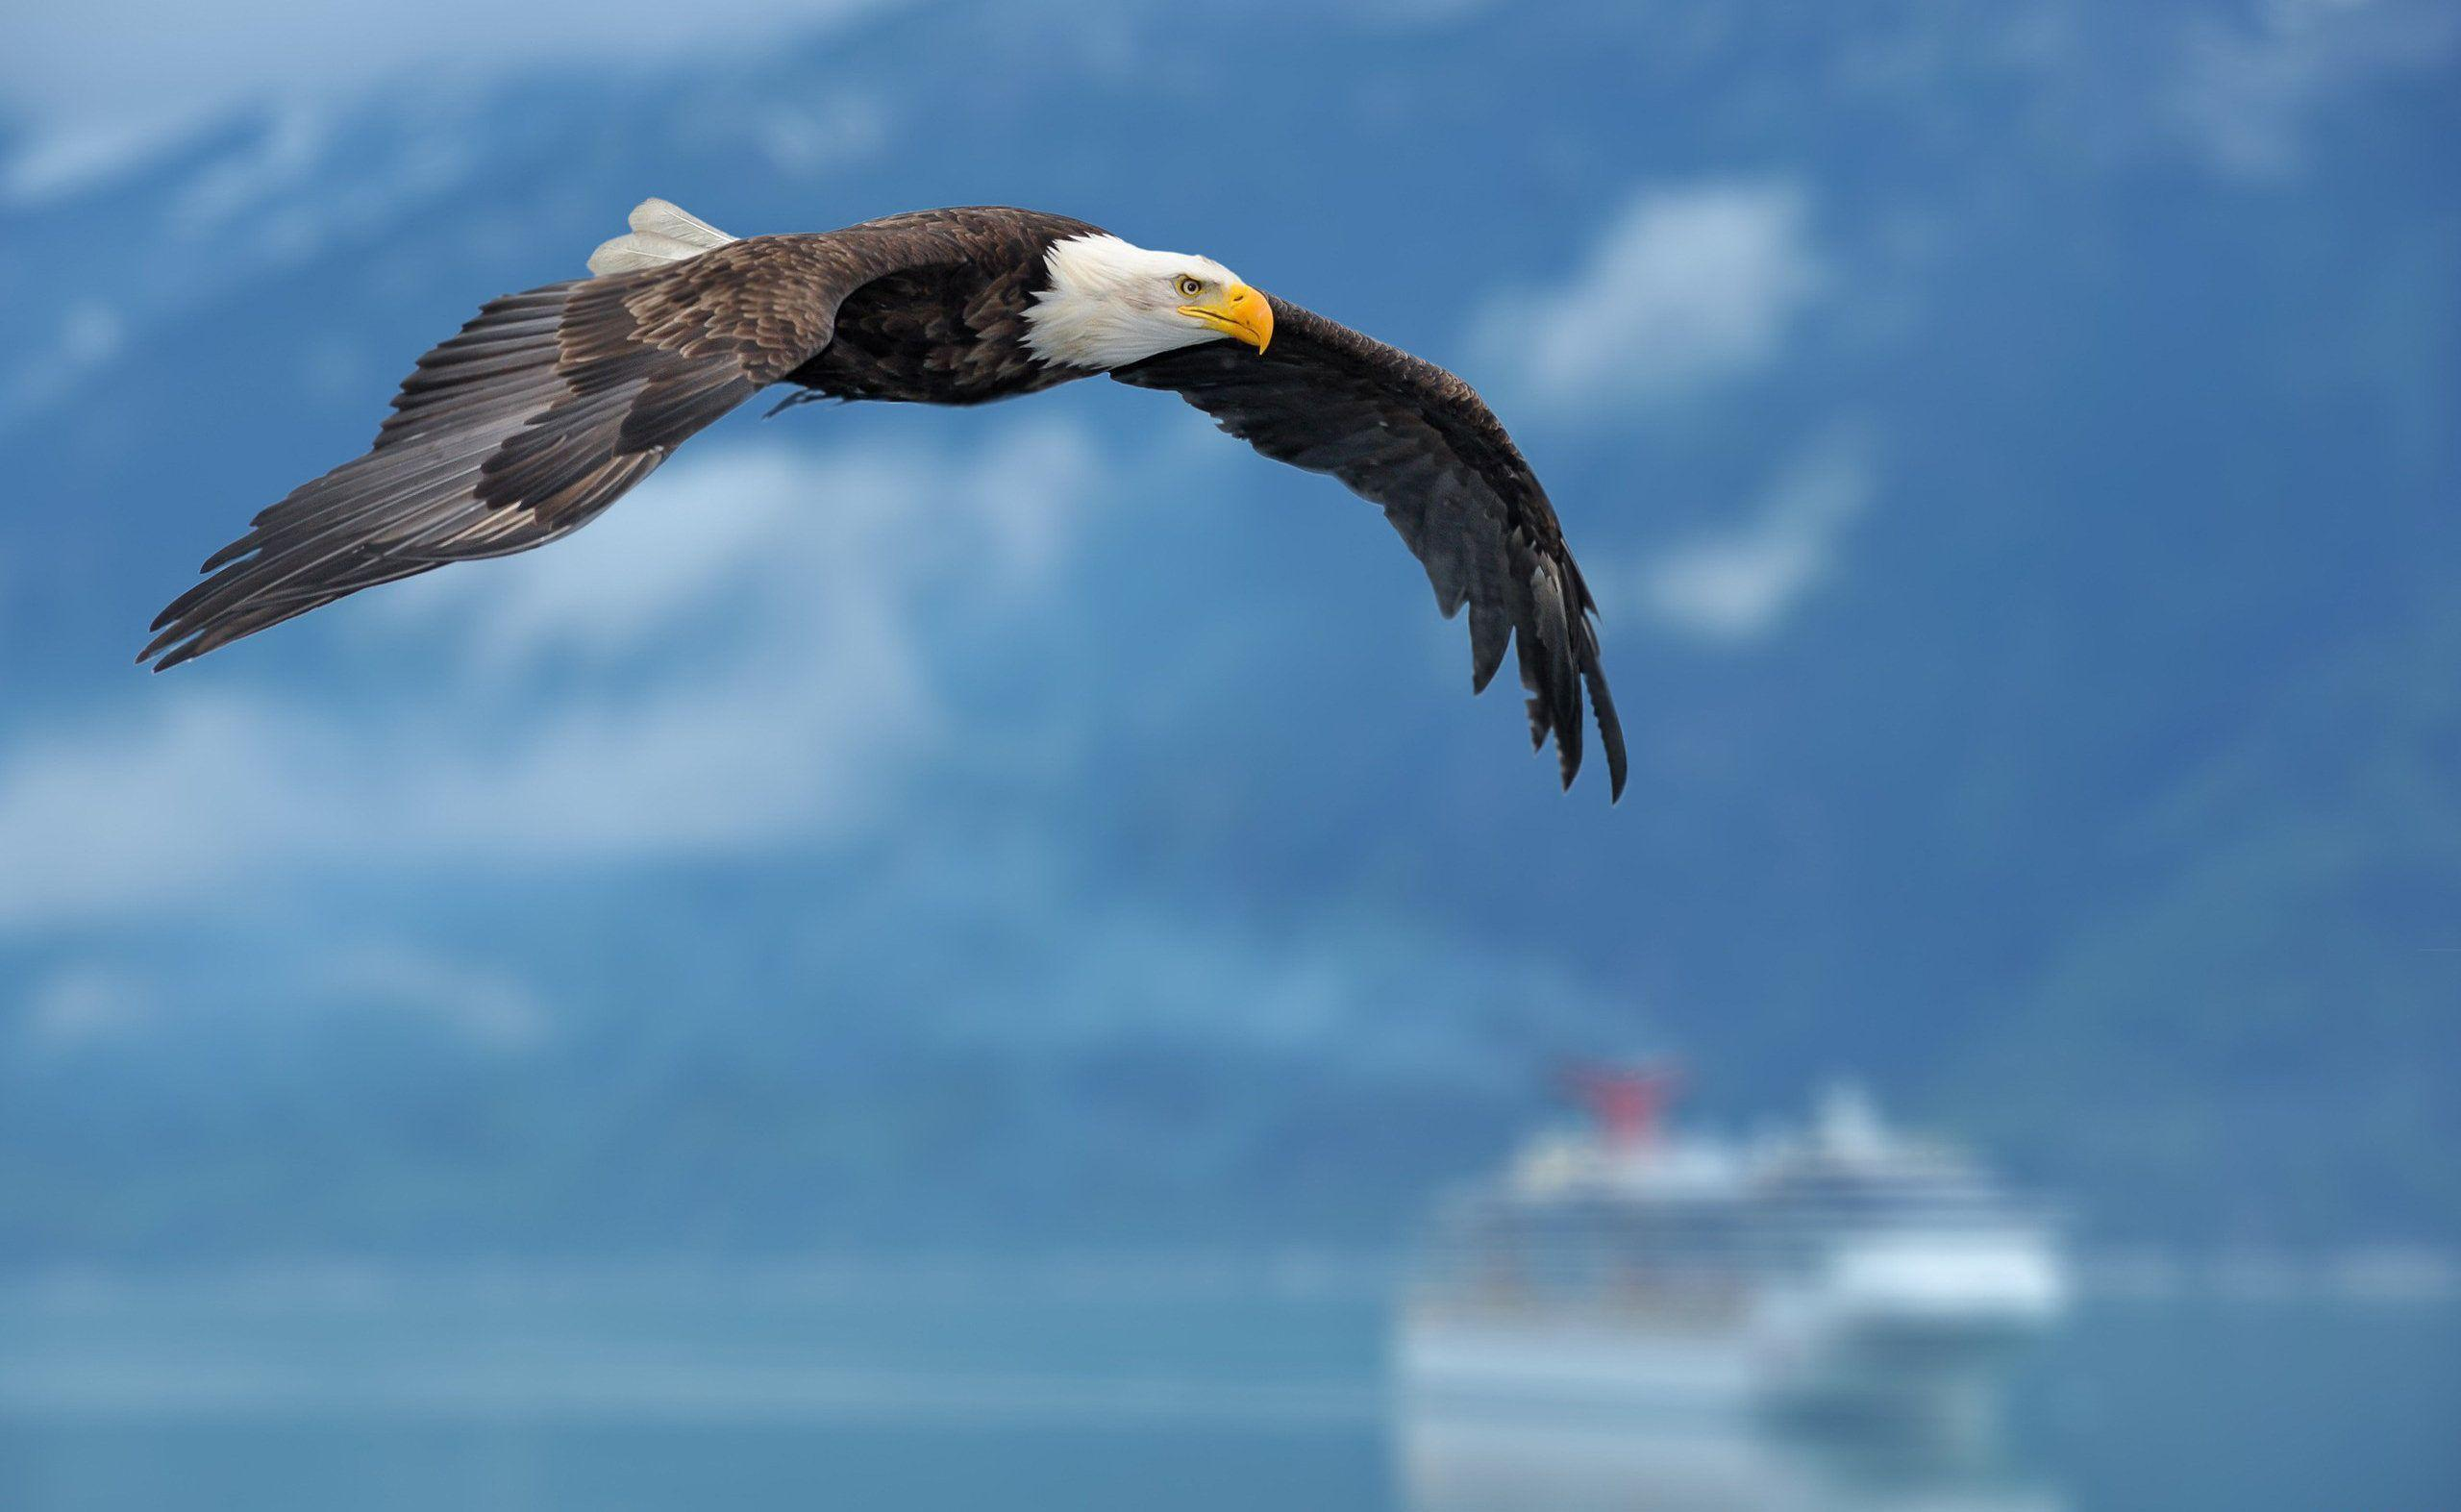 Download Bald Eagle Wallpapers 5454 2560x1573 px High Resolution